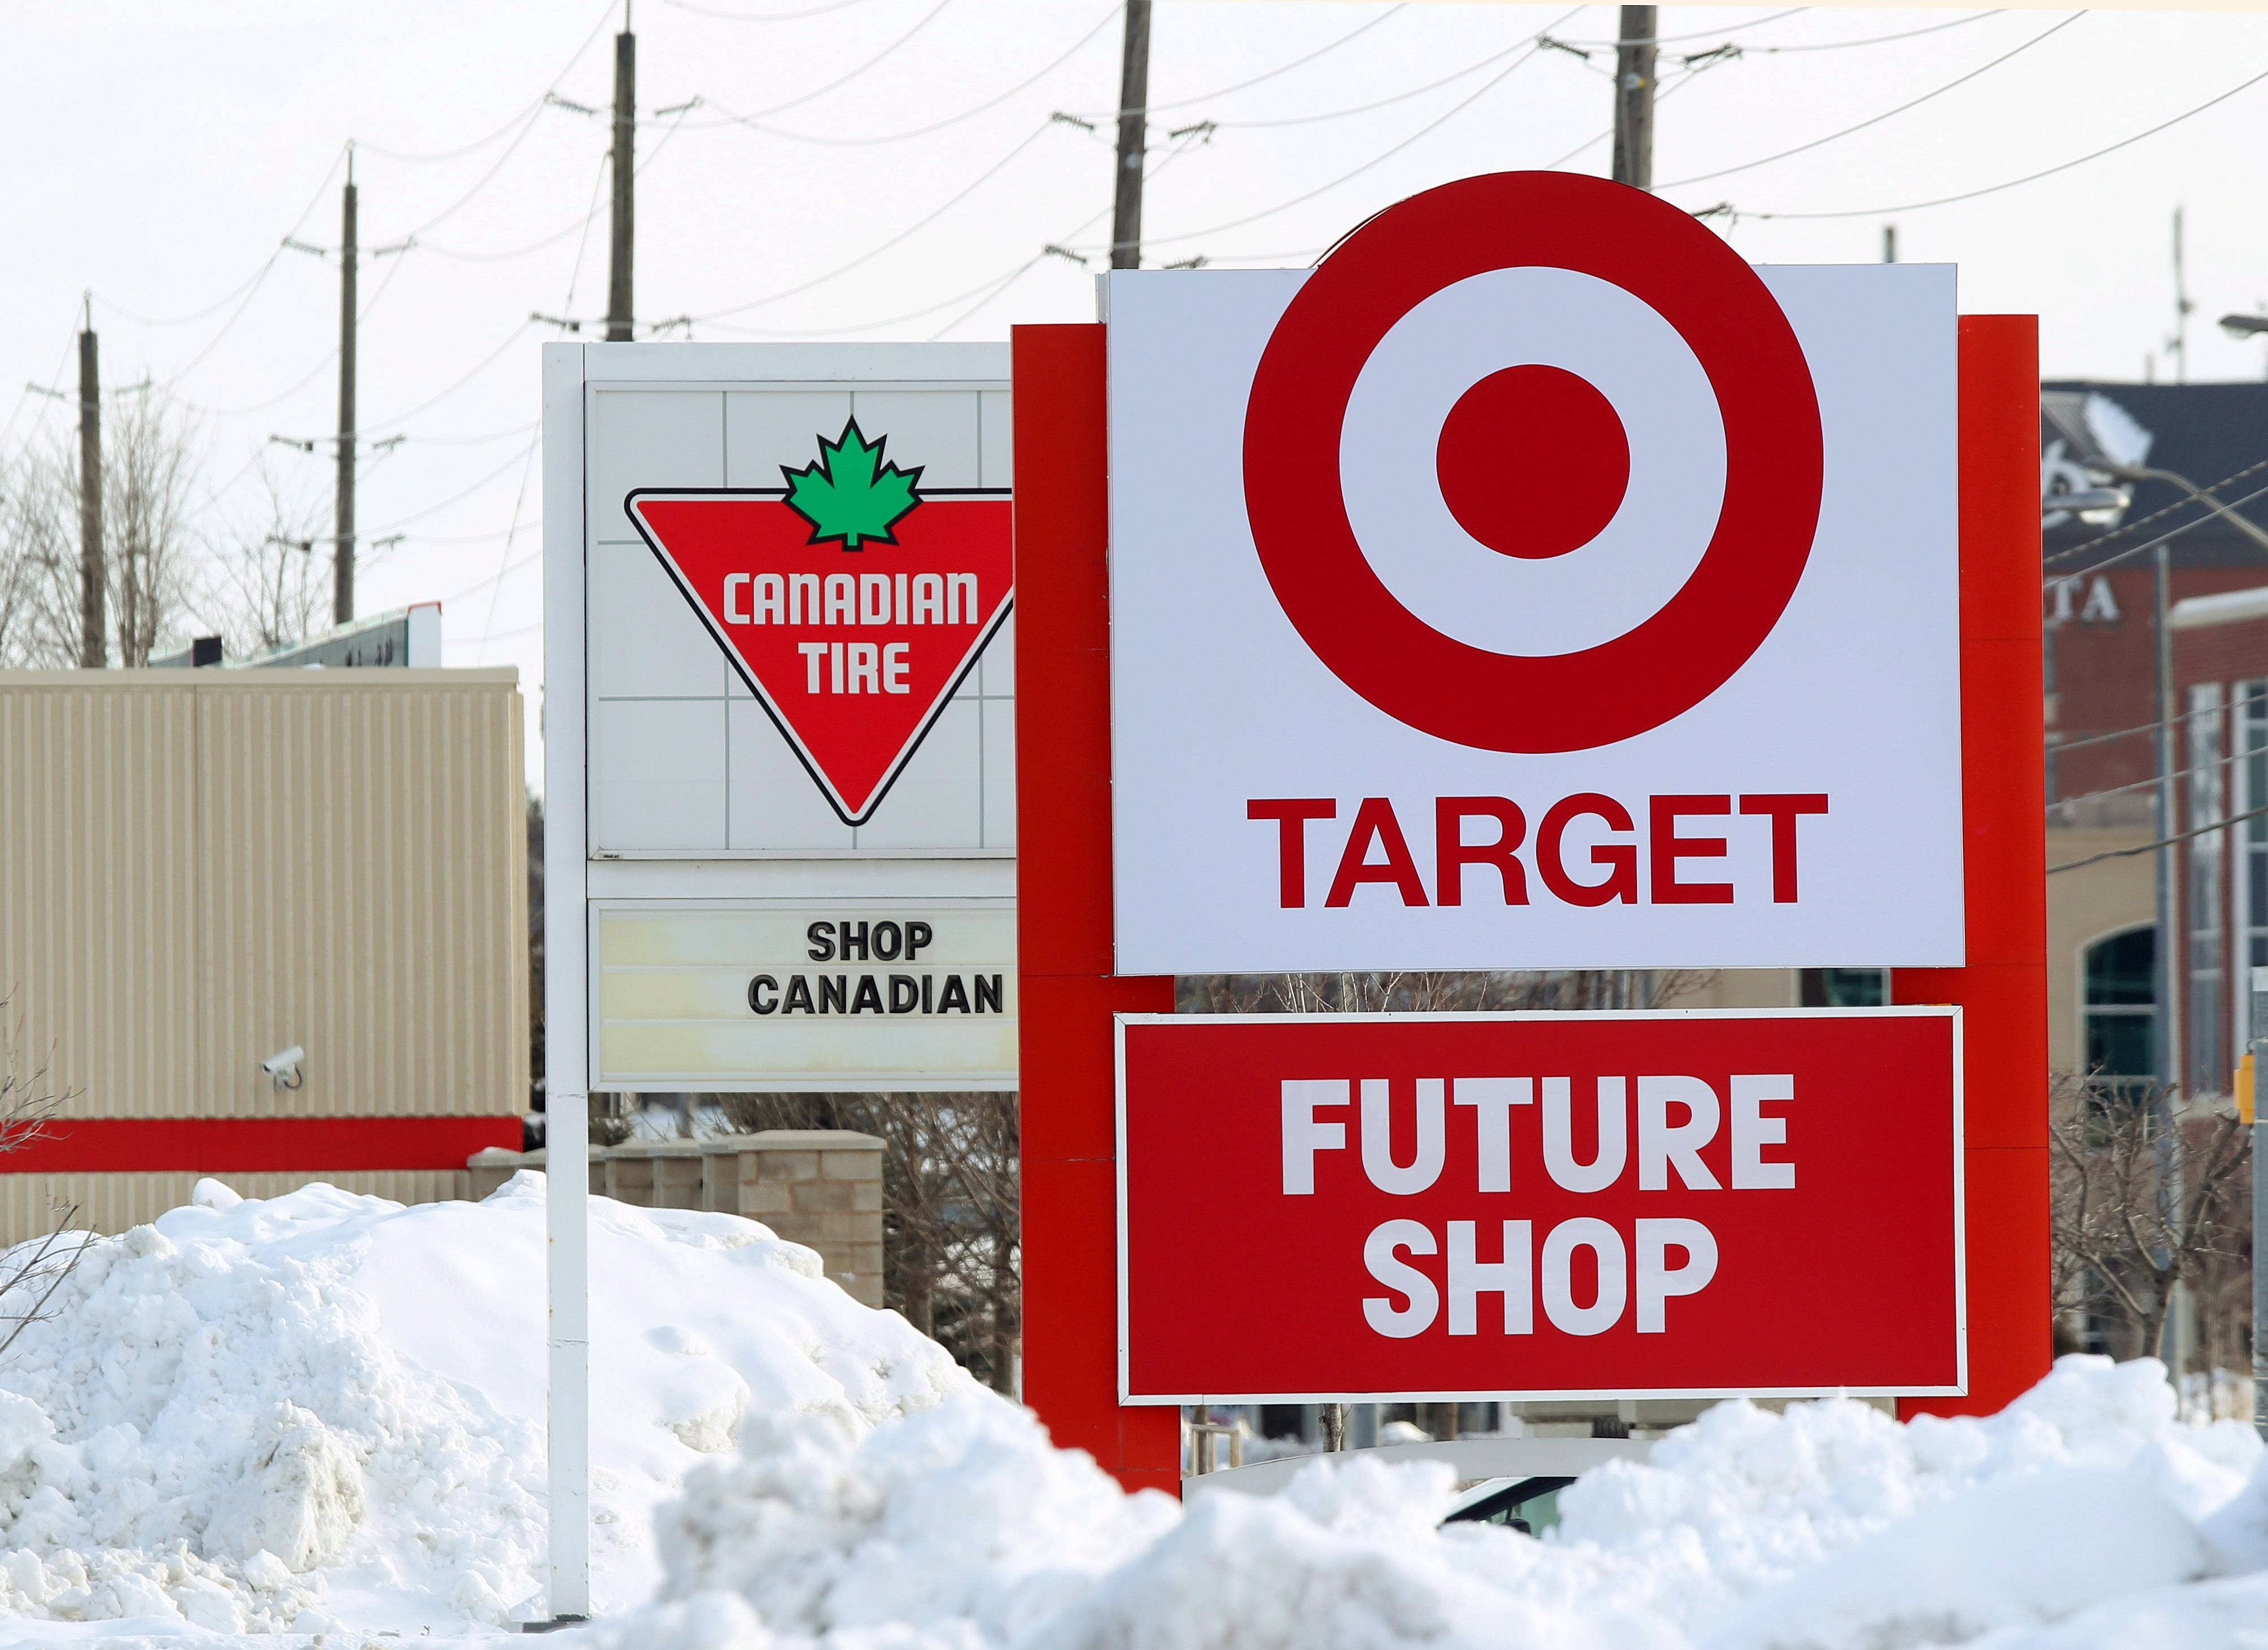 In this March 4, 2013 file photo, snow is piled in the parking lot of the new Target store in Guelph, Ontario as Canadian Tire posts a Canadian message on their sign. For years, Canadians would cross the border to the U.S. to shop at Target. Exporting its cheap chic there seemed like a no-brainer. But a year after opening more than 100 stores north of the border, Target has found business isn't so easy.